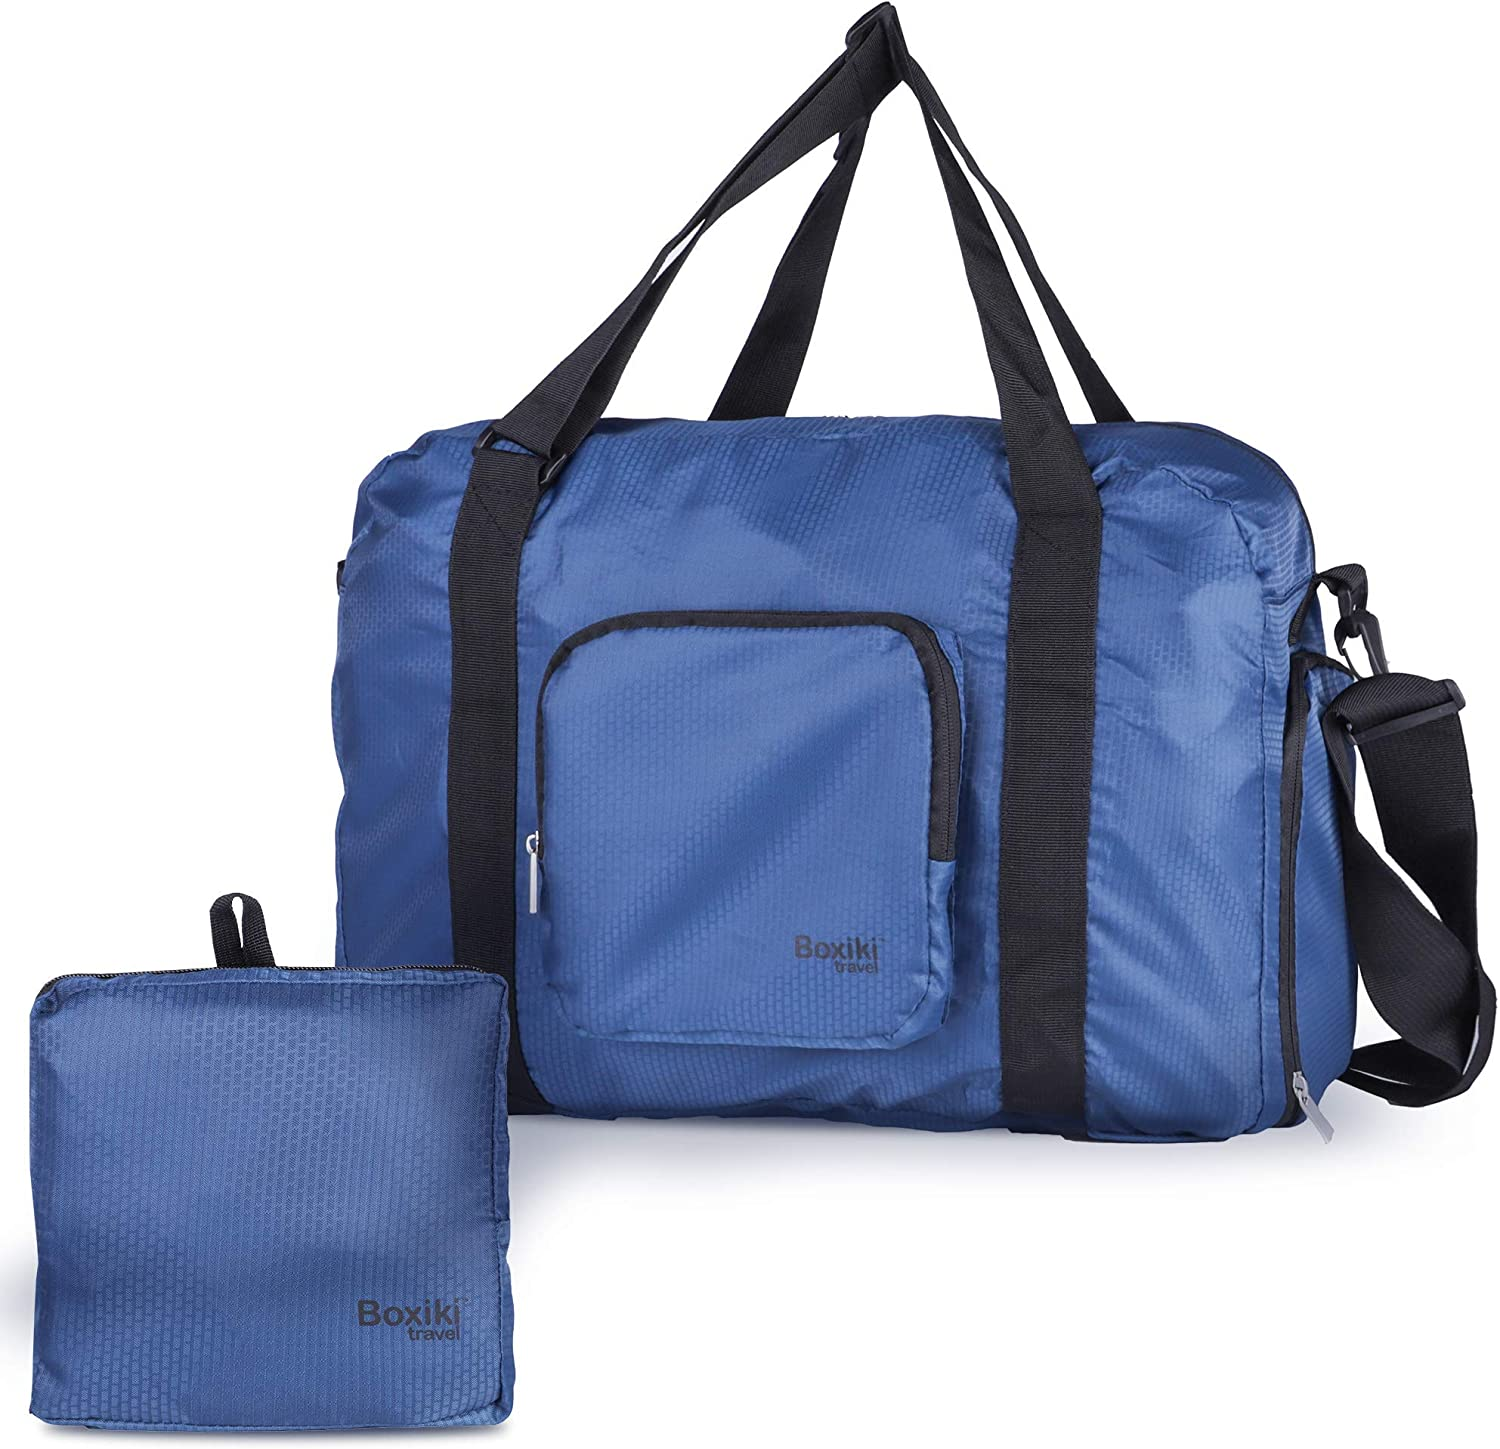 Boxiki Travel Foldable Duffle Bag Large Duffel Bag for Women and Men, Gym Bag for Women with Shoe Compartment, Compact Travel Luggage Gym Duffle Bag – Packable Sports Travel Duffel Bag Blue